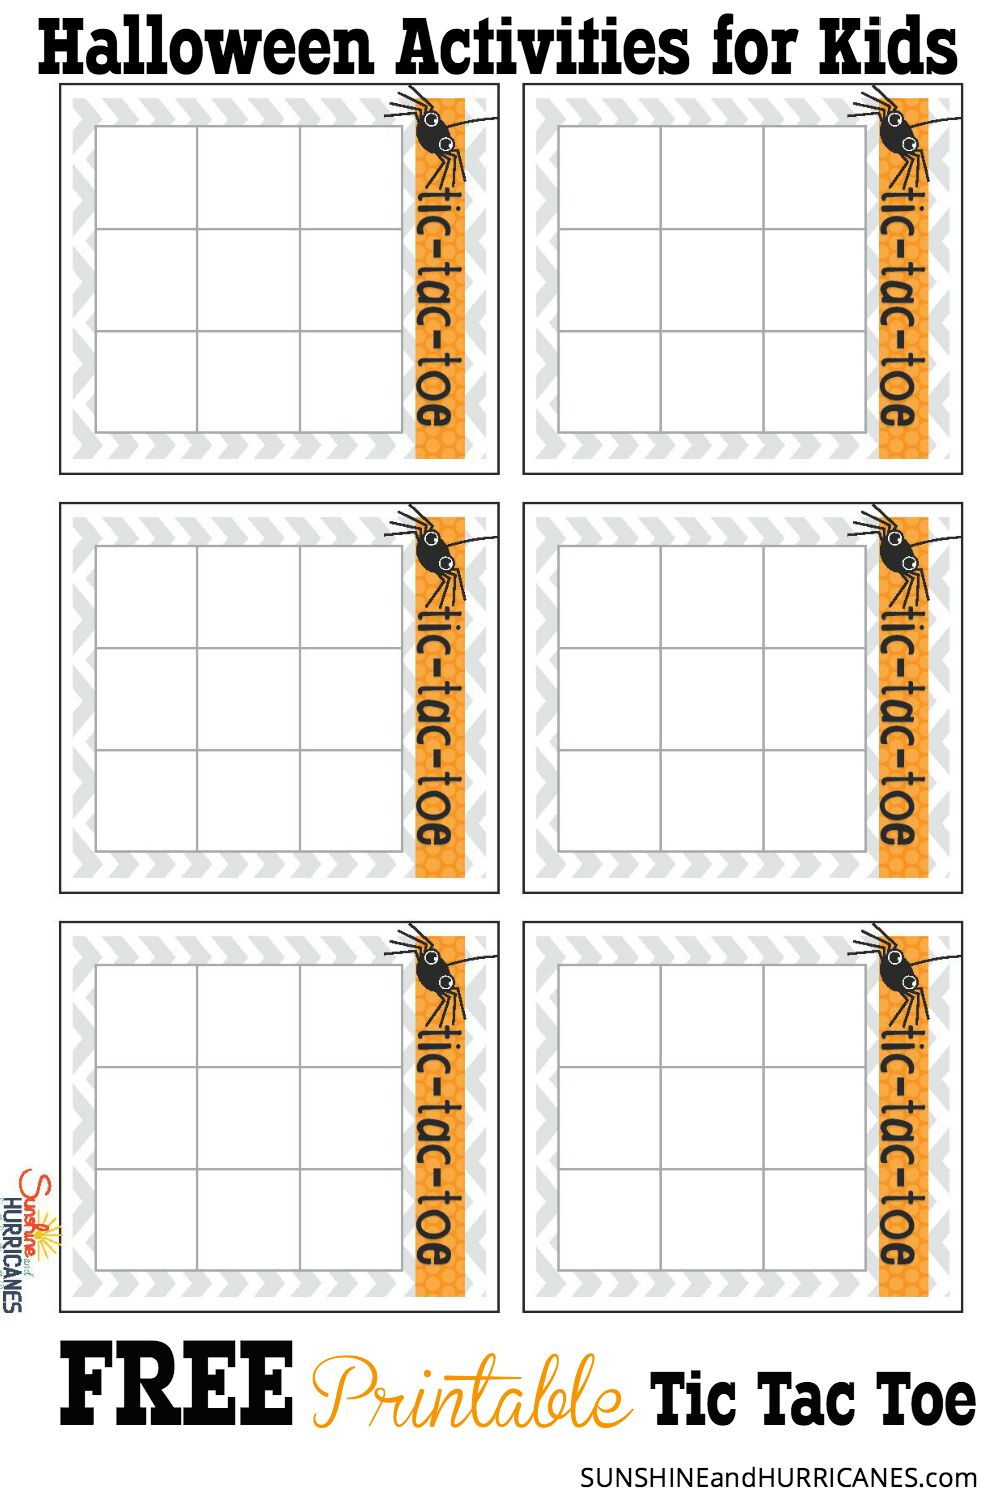 photo about Free Printable Tic Tac Toe Board called Halloween Actions for Youngsters - Tic Tac Toe